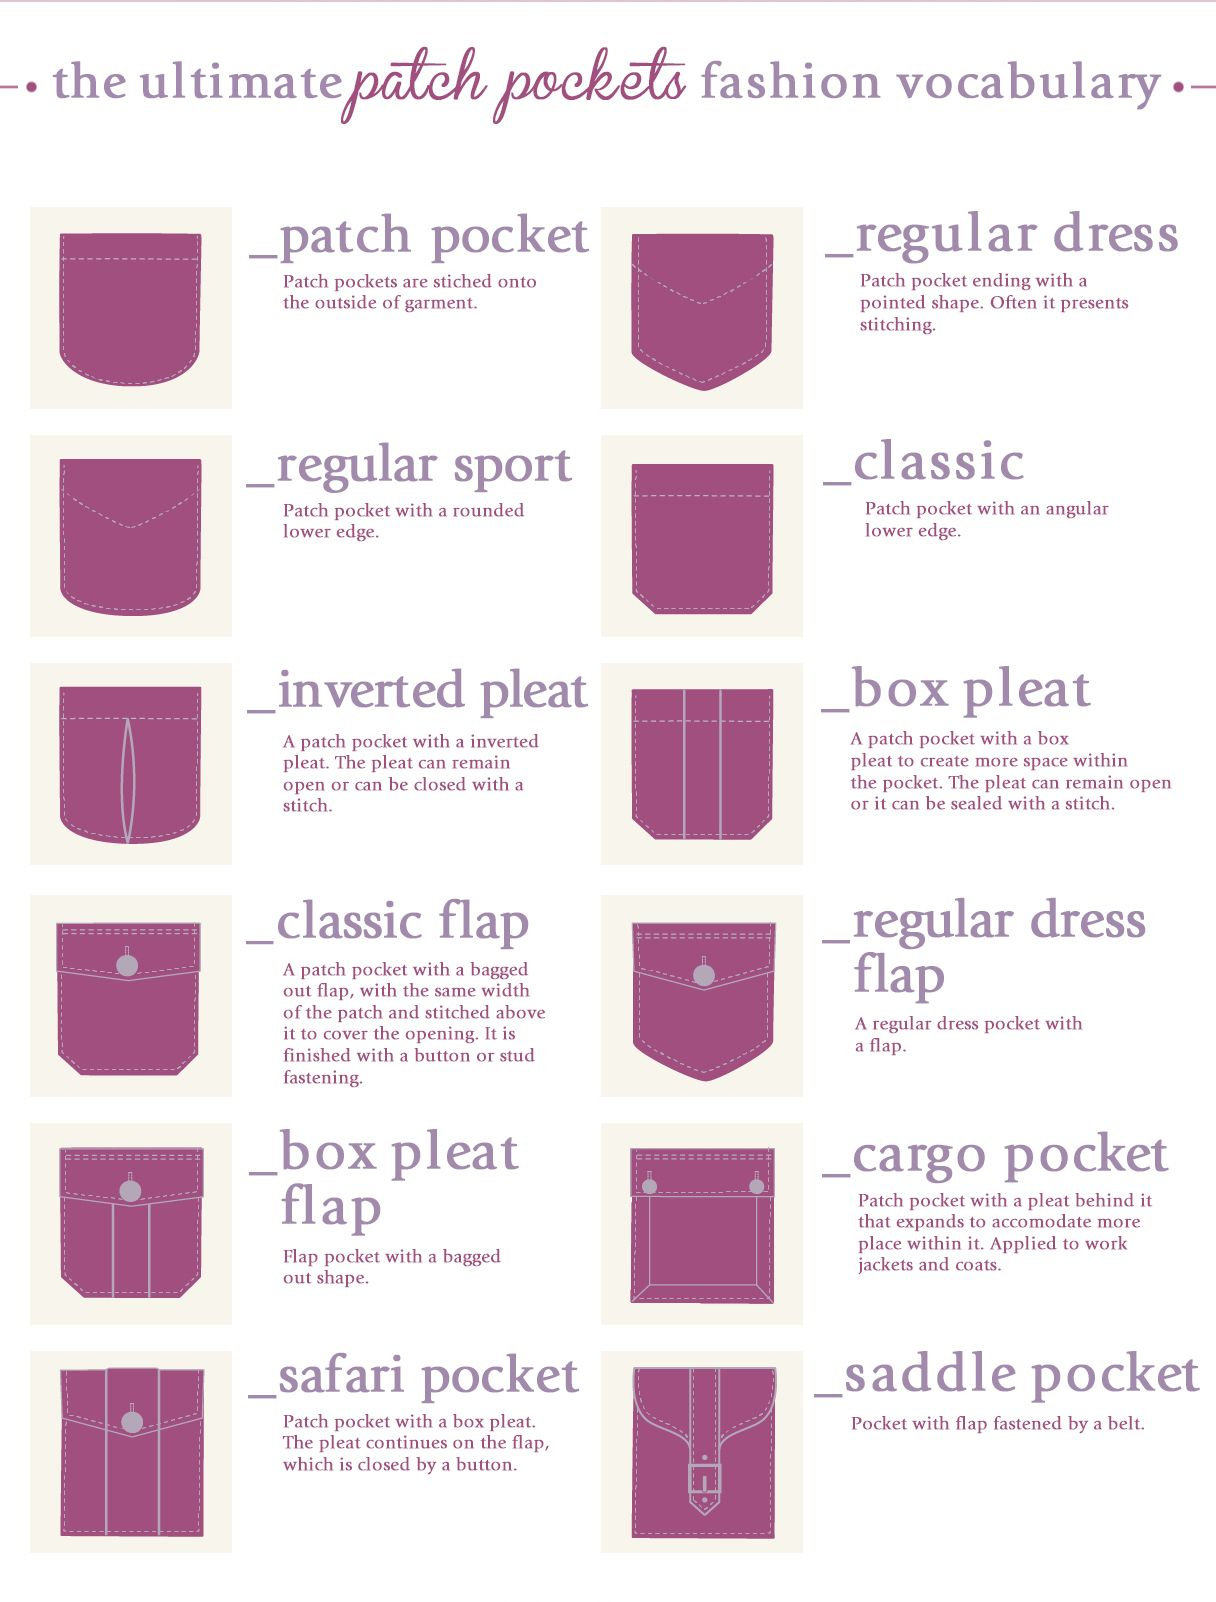 The ultimate patch pockets fashion vocabulary More Visual Glossaries (for Her): Backpacks / Bags / Beads / Belt knots / Bobby Pins / Boots / Bra Types / Braids / Buns / Chain Types / Coats / Collars / Darts / Dress Shapes / Dress Silhouettes /...